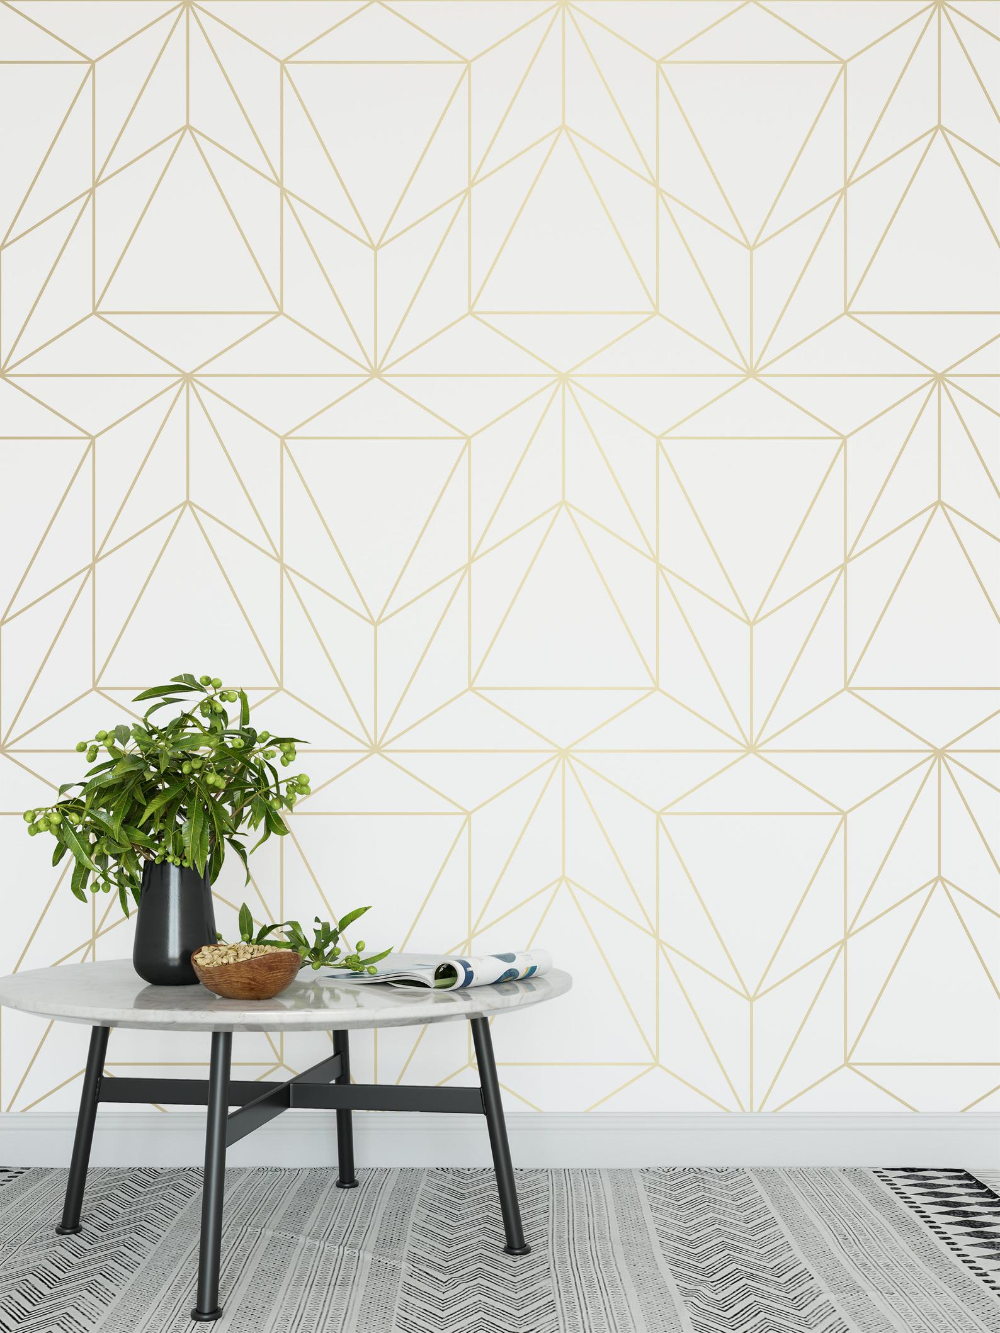 Removable Peel And Stick Wallpaper Gold Geometric Wallpaper Etsy Gold Geometric Wallpaper White And Gold Wallpaper Geometric Wallpaper